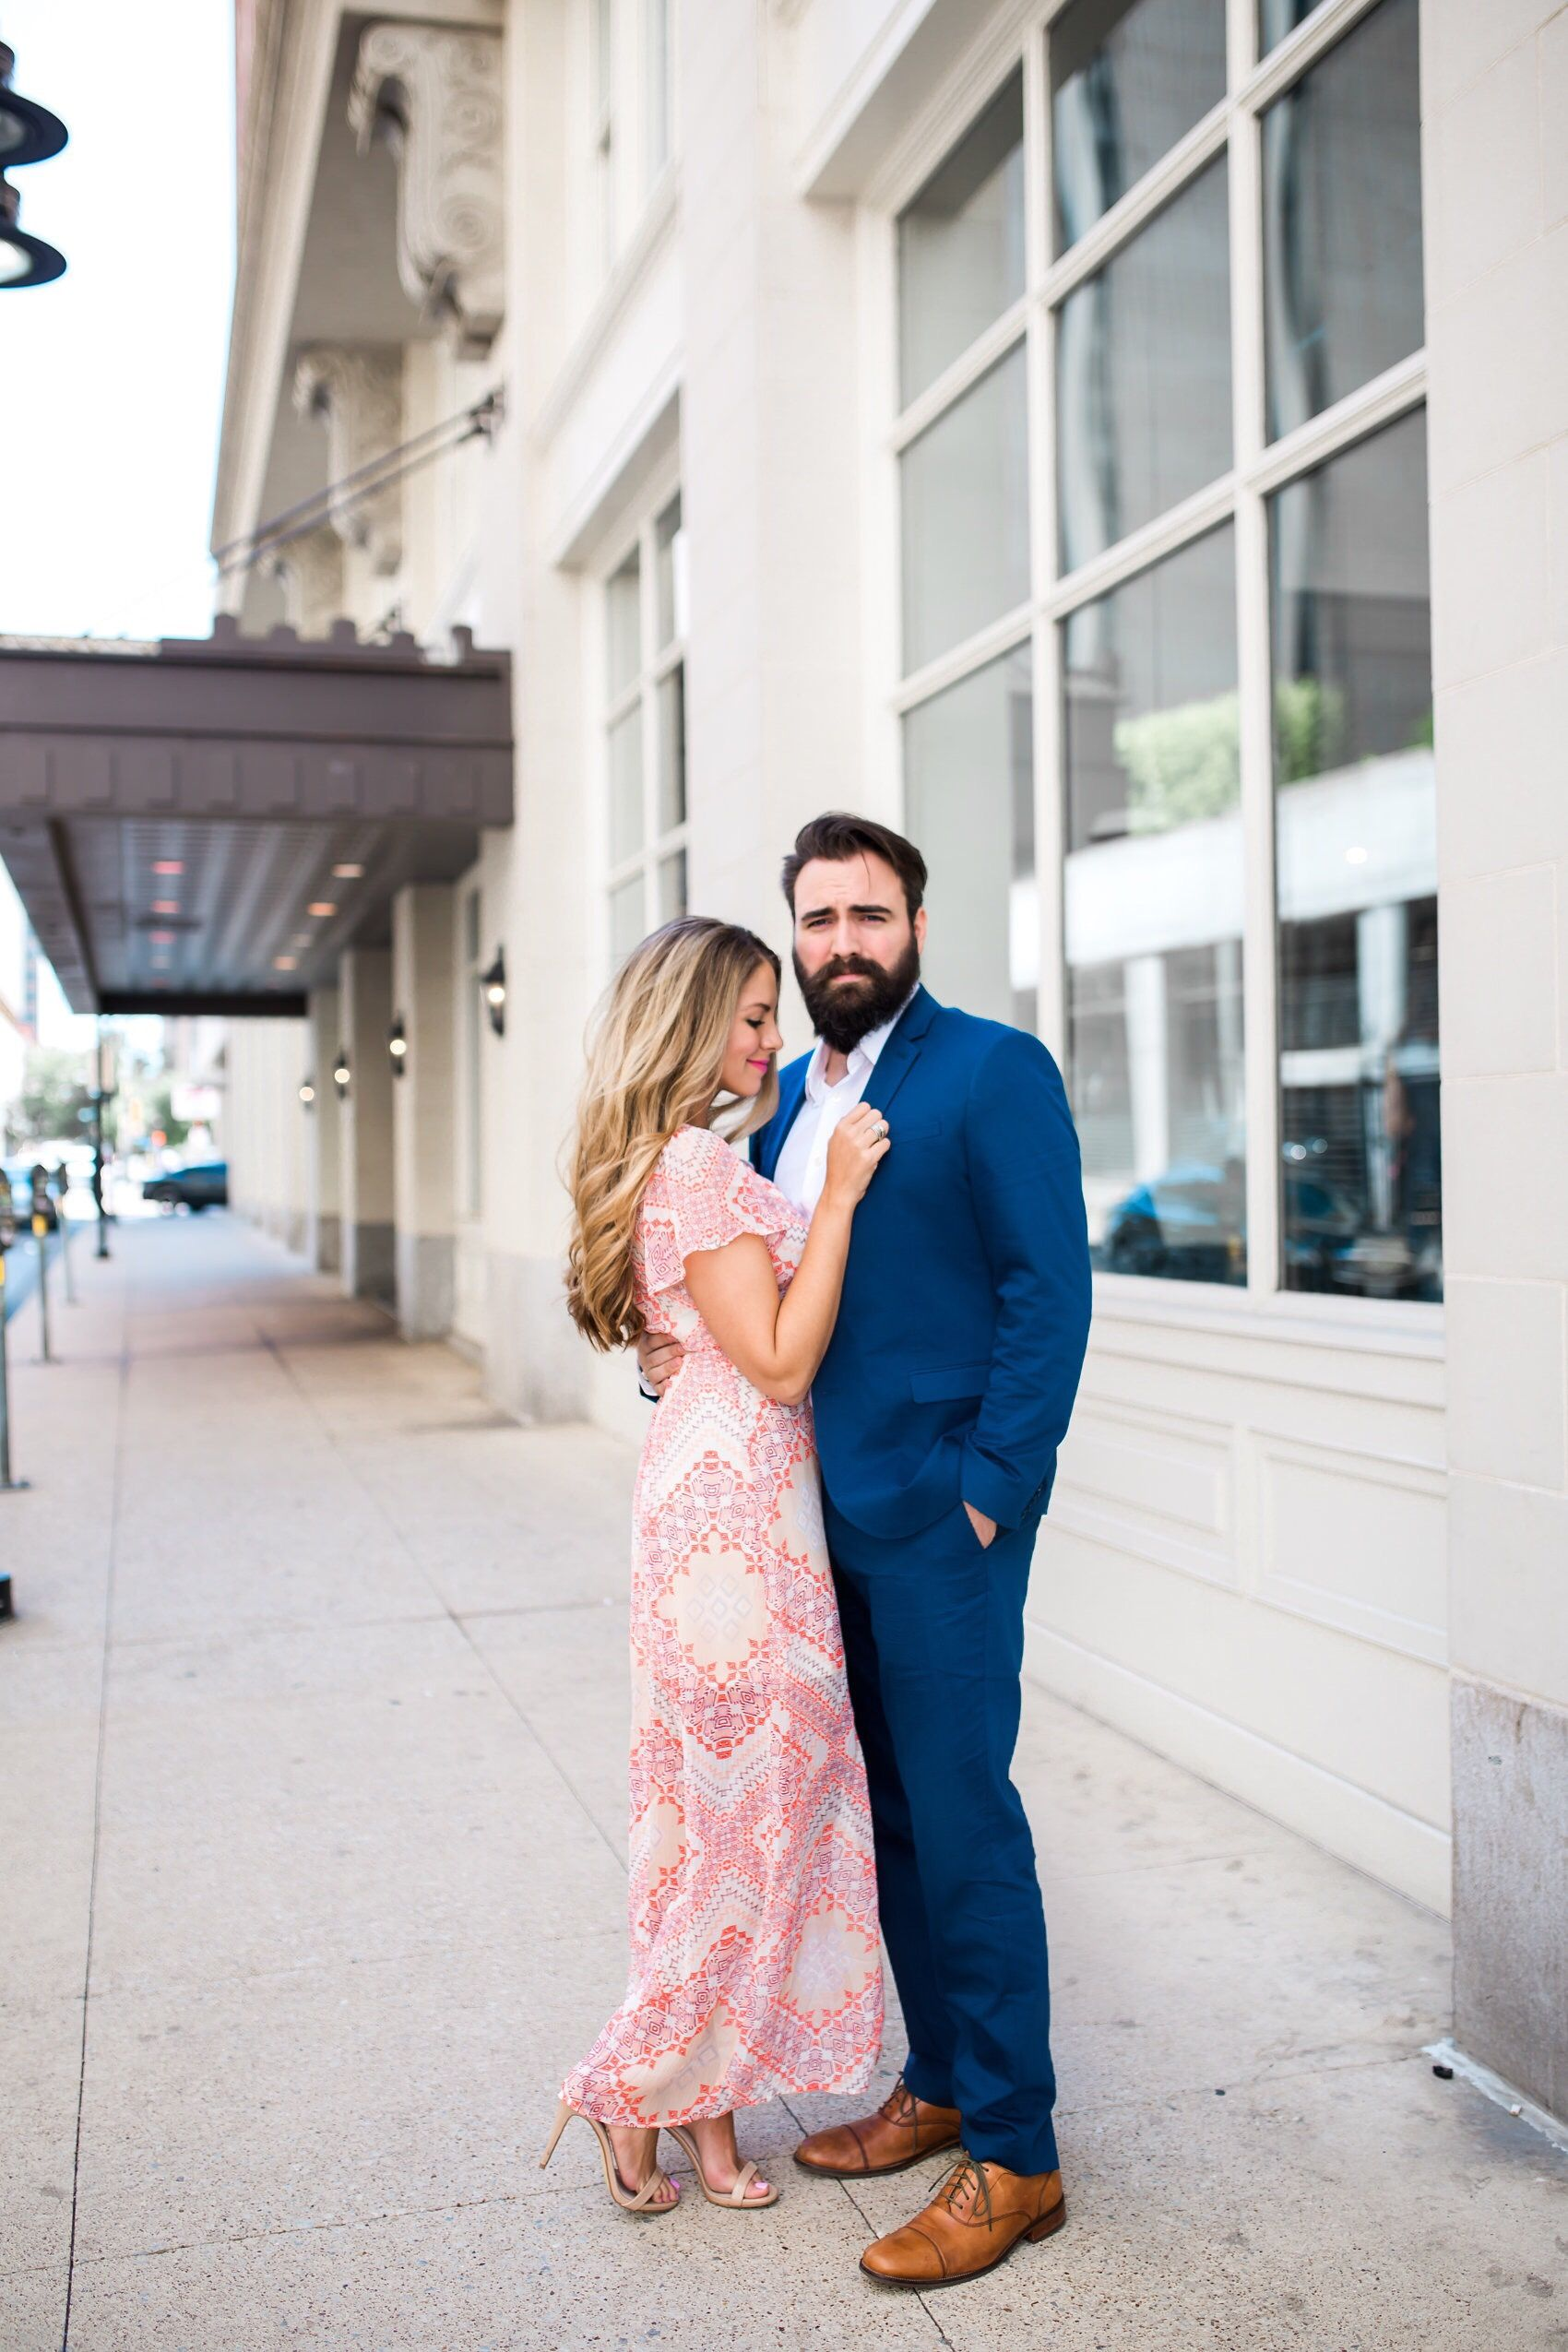 His Her Wedding Guest Attire The Teacher Diva A Dallas Fashion Blog Featuring Beauty Lifestyle Wedding Attire Guest Guest Attire Guest Outfit